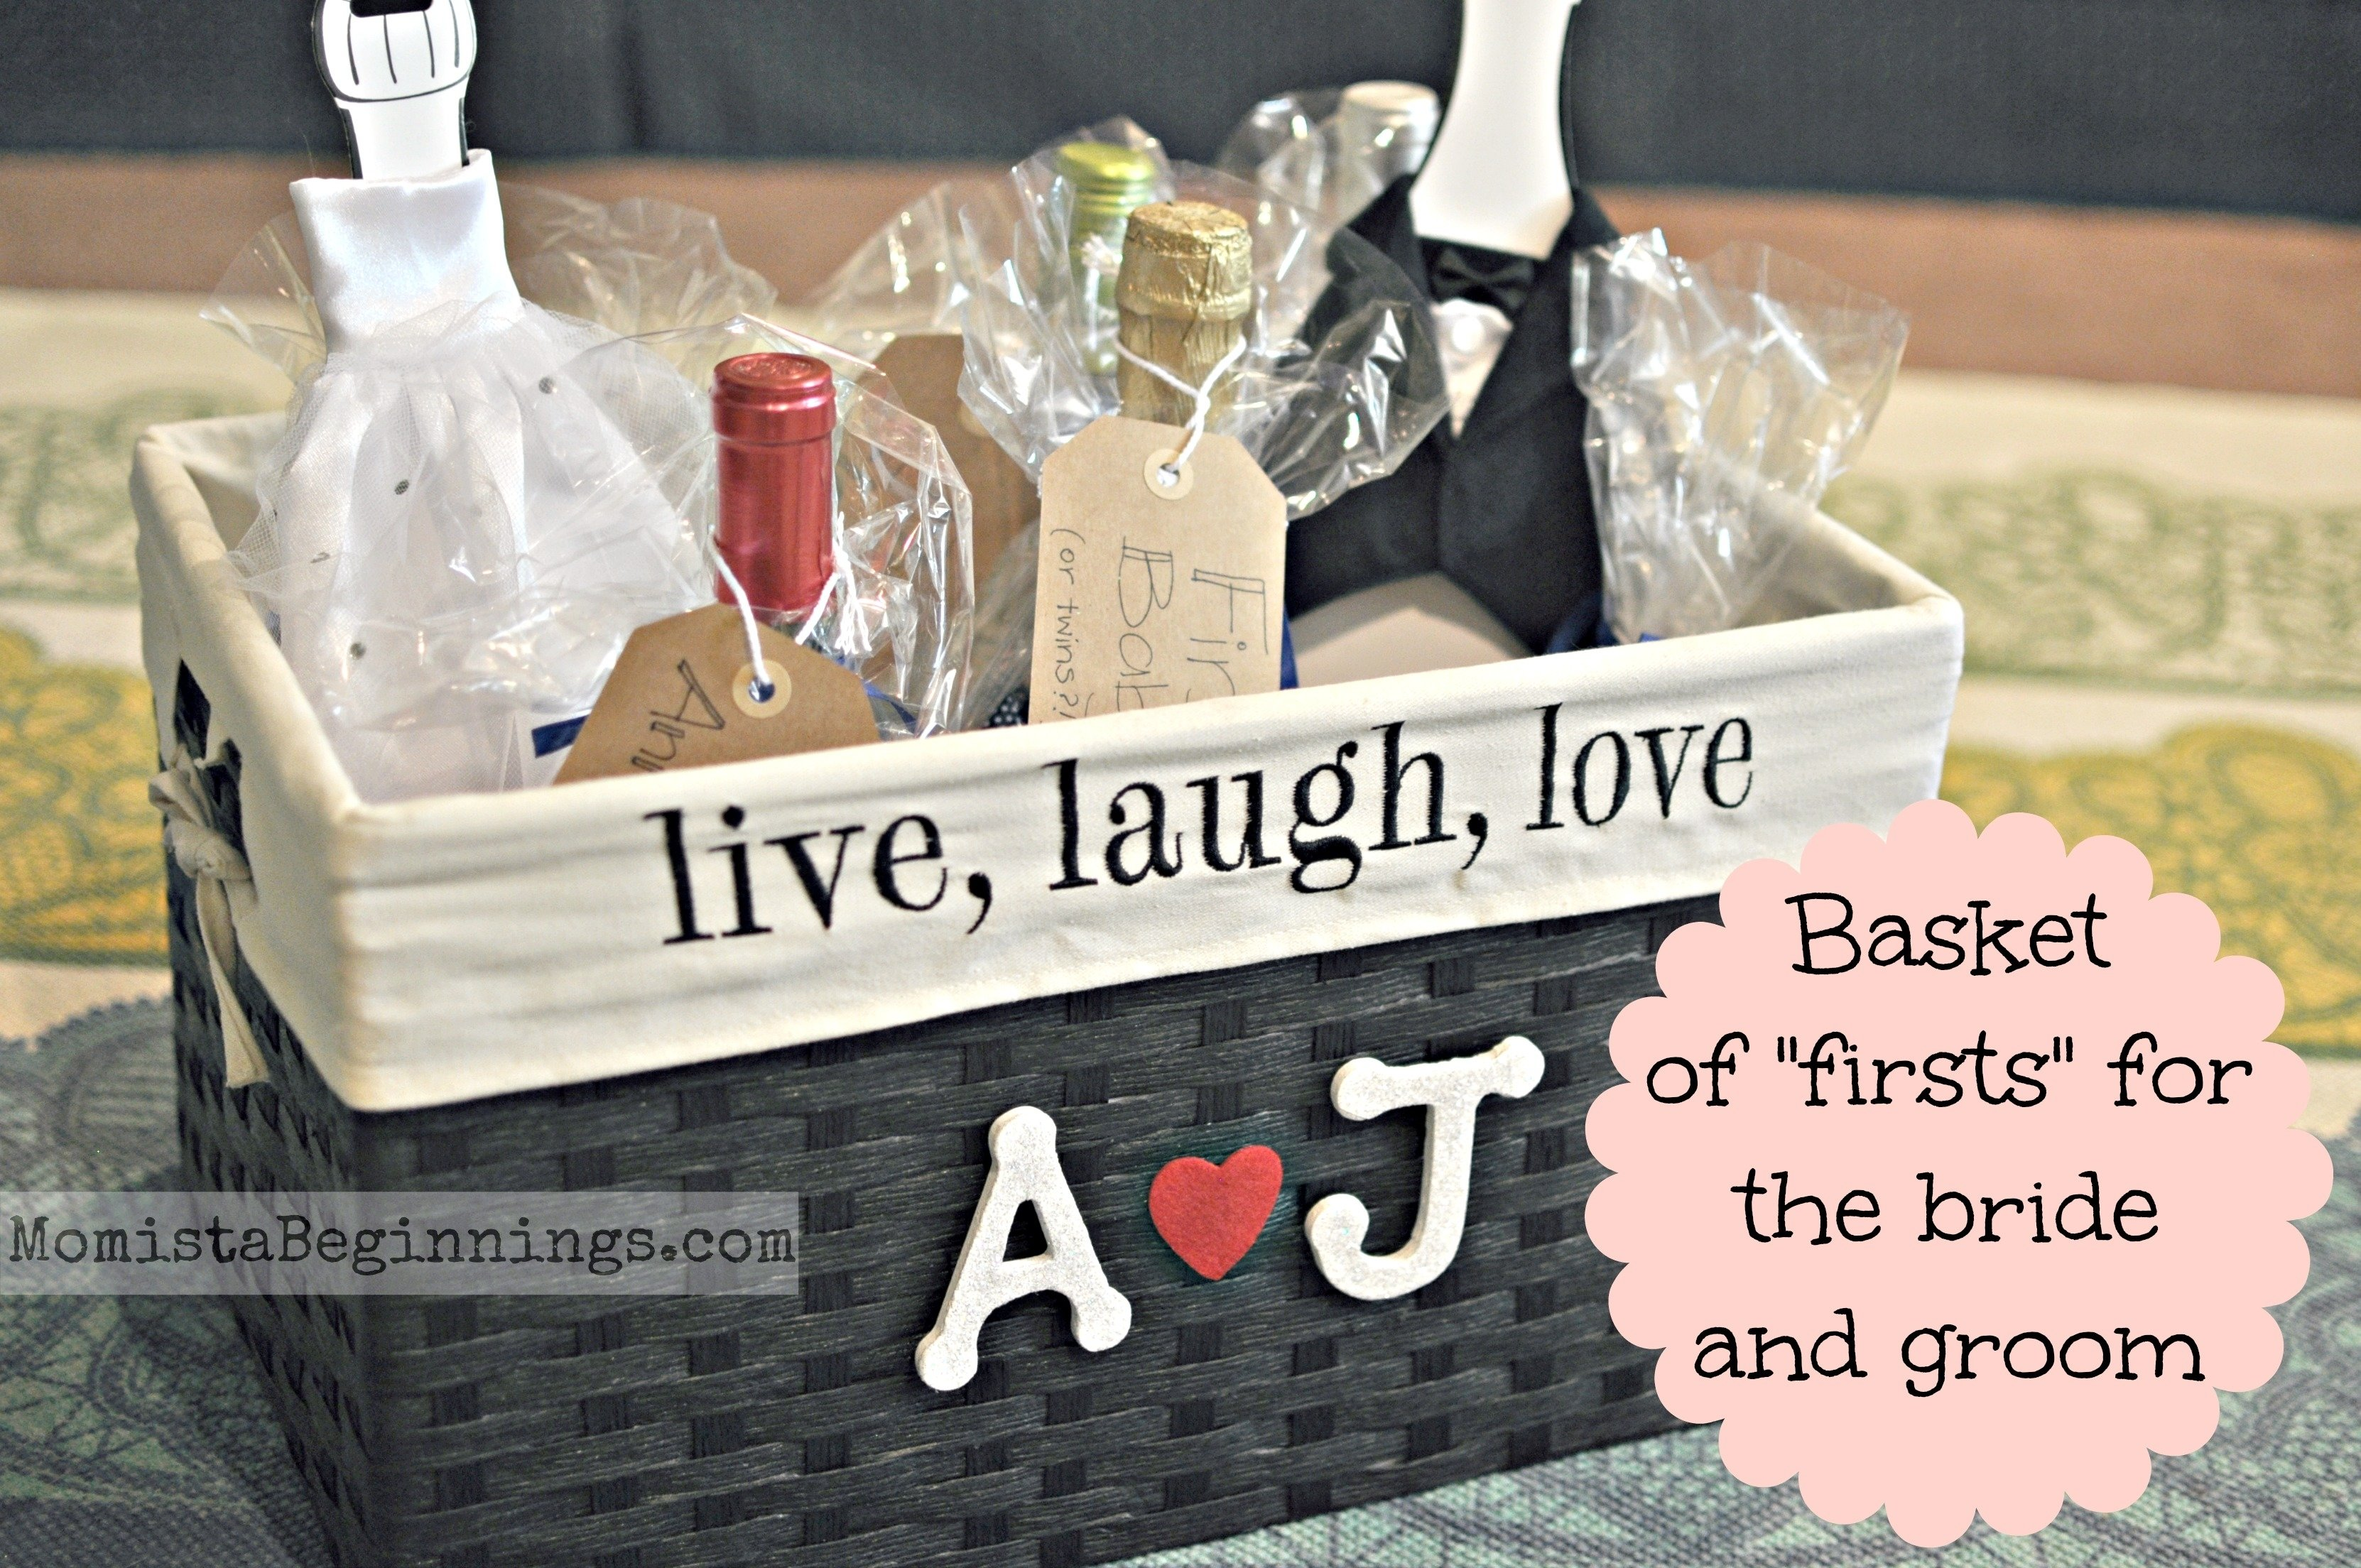 10 Most Recommended Gift Ideas For Bride To Be basket of firsts for the bride and groom diy momista beginnings 2021